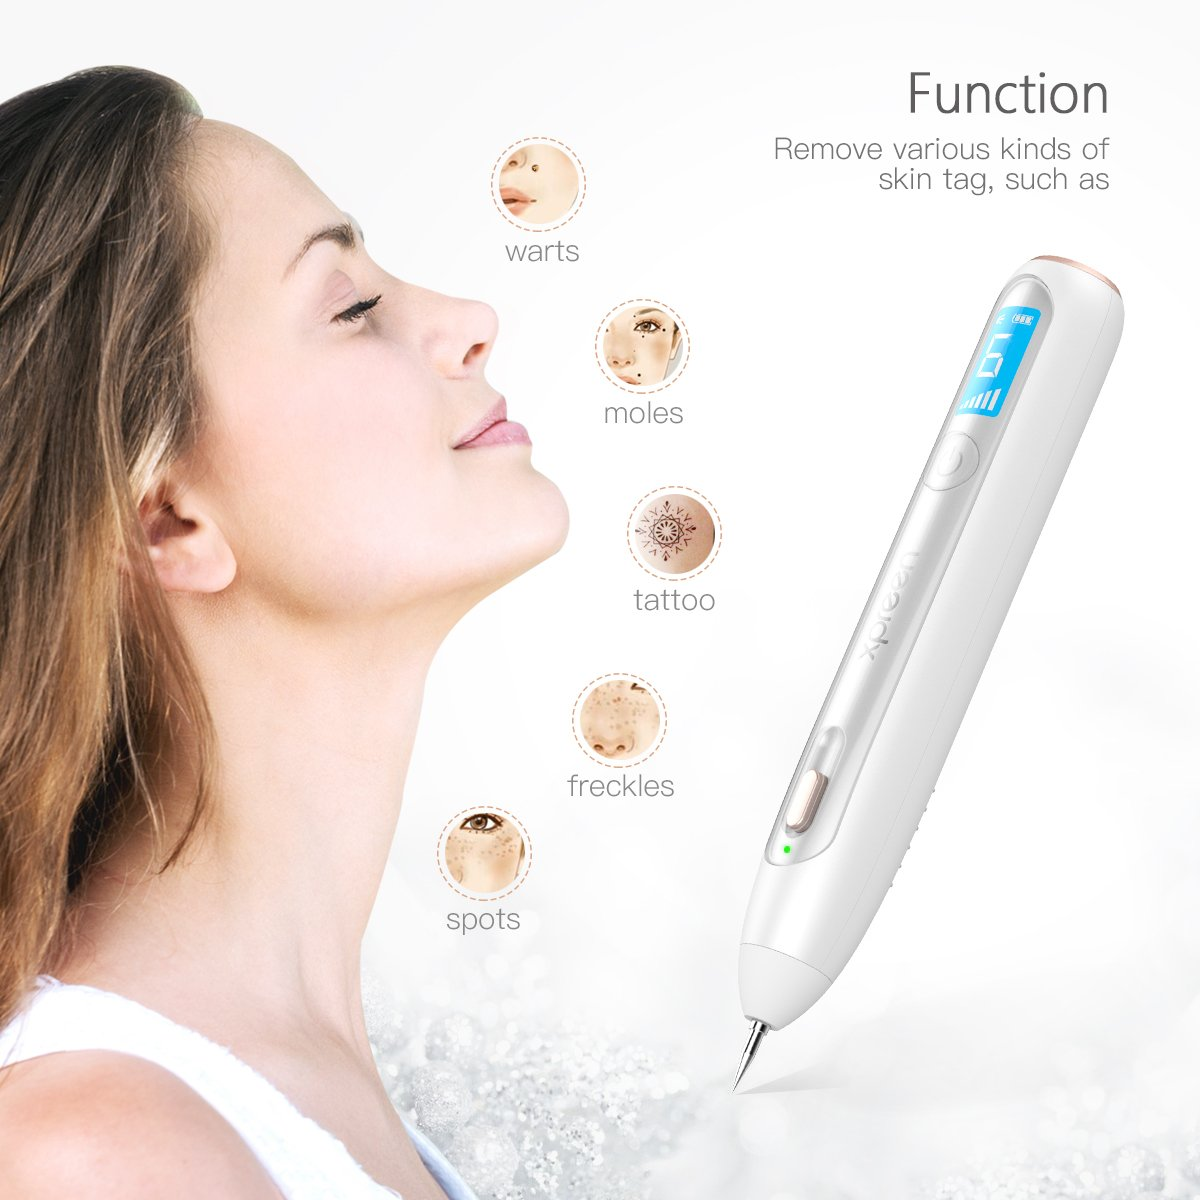 Wireless Rechargeable Dot Mole Remover Pen Xpreen Skin Tag Remover With Led Screen And Spotlight 6 Adjustable Modes Mole Dark Removal Kit For Wart Freckle Dark Spot Nevus And Tattoo Walmart Com